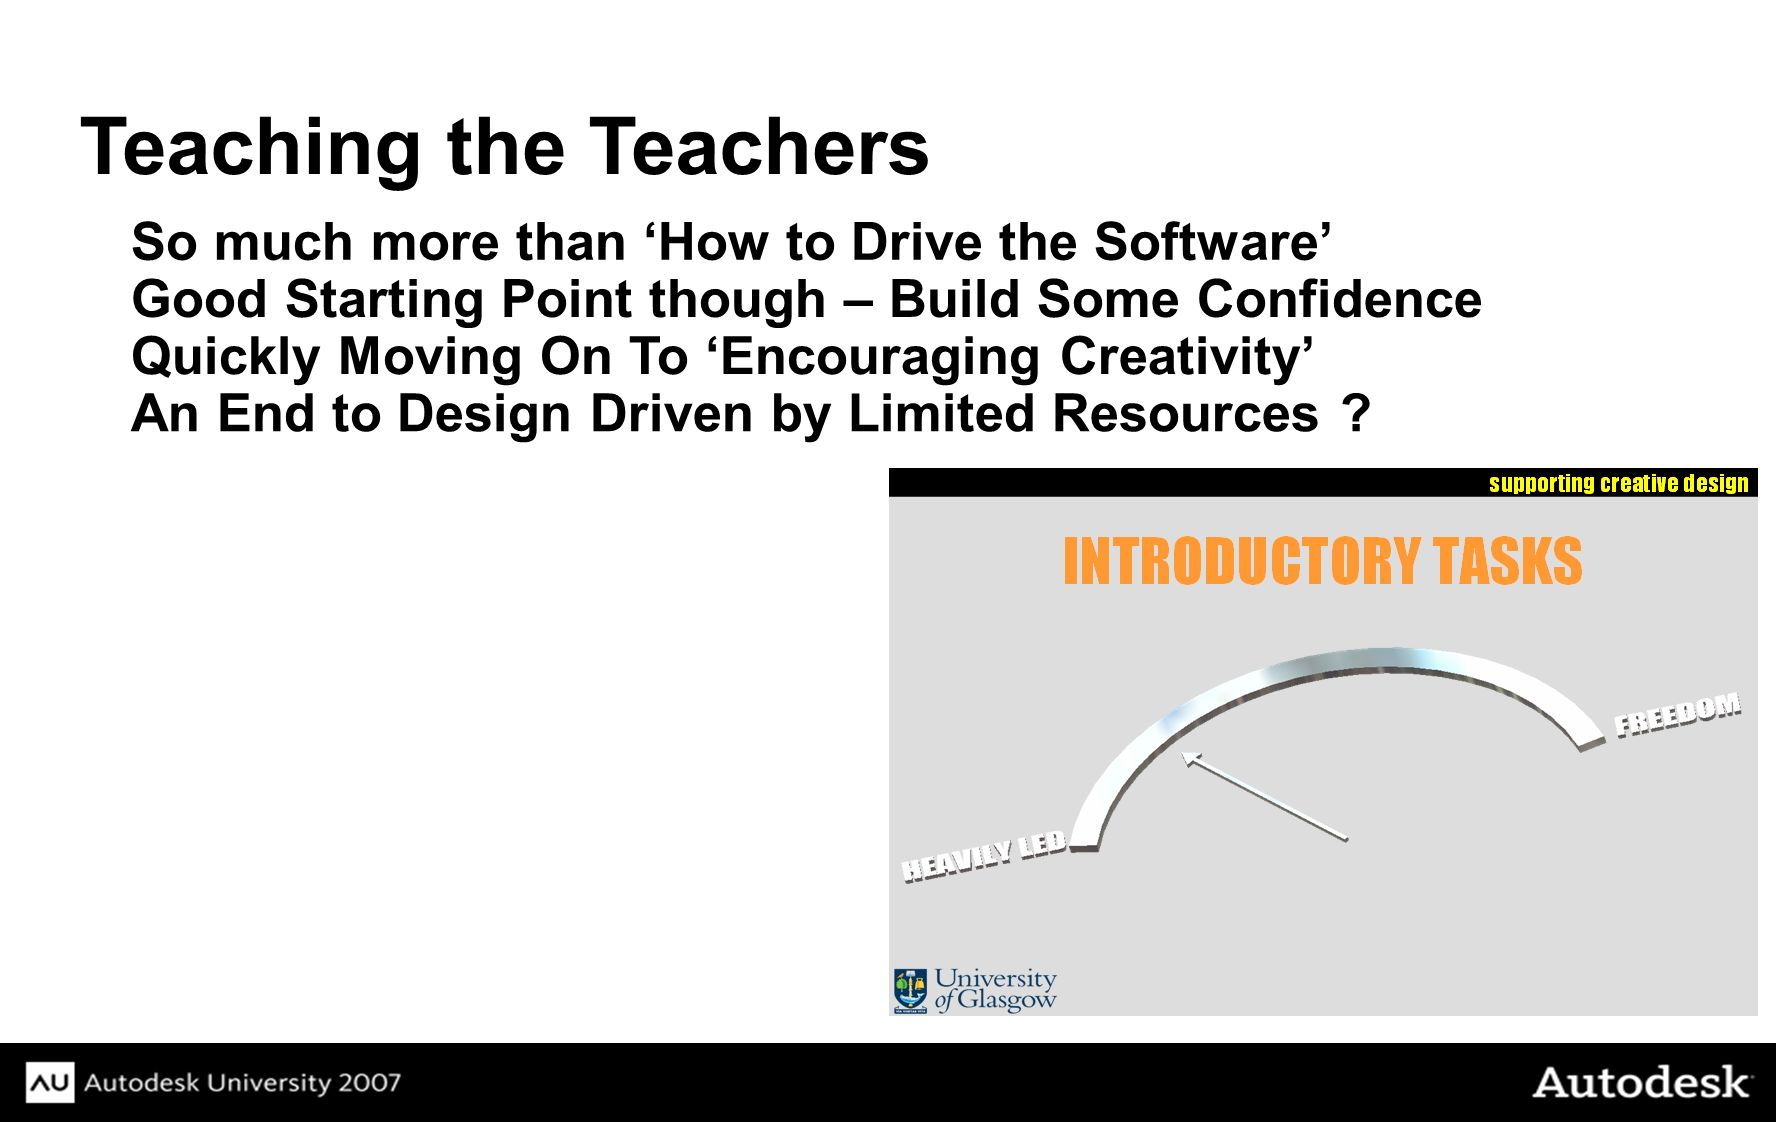 Teaching the Teachers So much more than How to Drive the Software Good Starting Point though – Build Some Confidence Quickly Moving On To Encouraging Creativity An End to Design Driven by Limited Resources ?